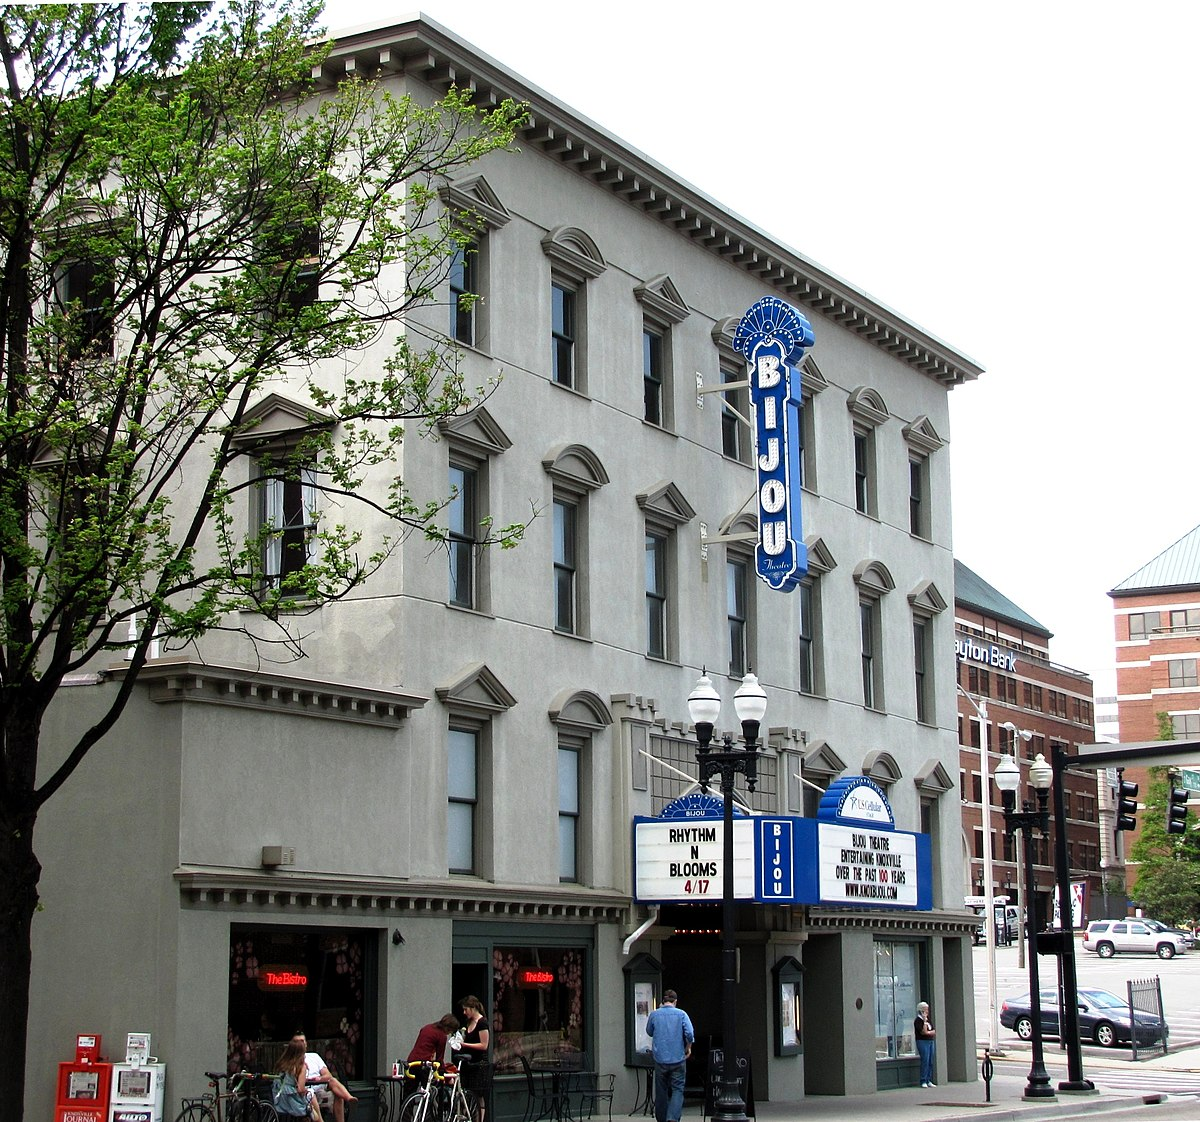 Bijou Theatre Knoxville Tennessee  Wikipedia